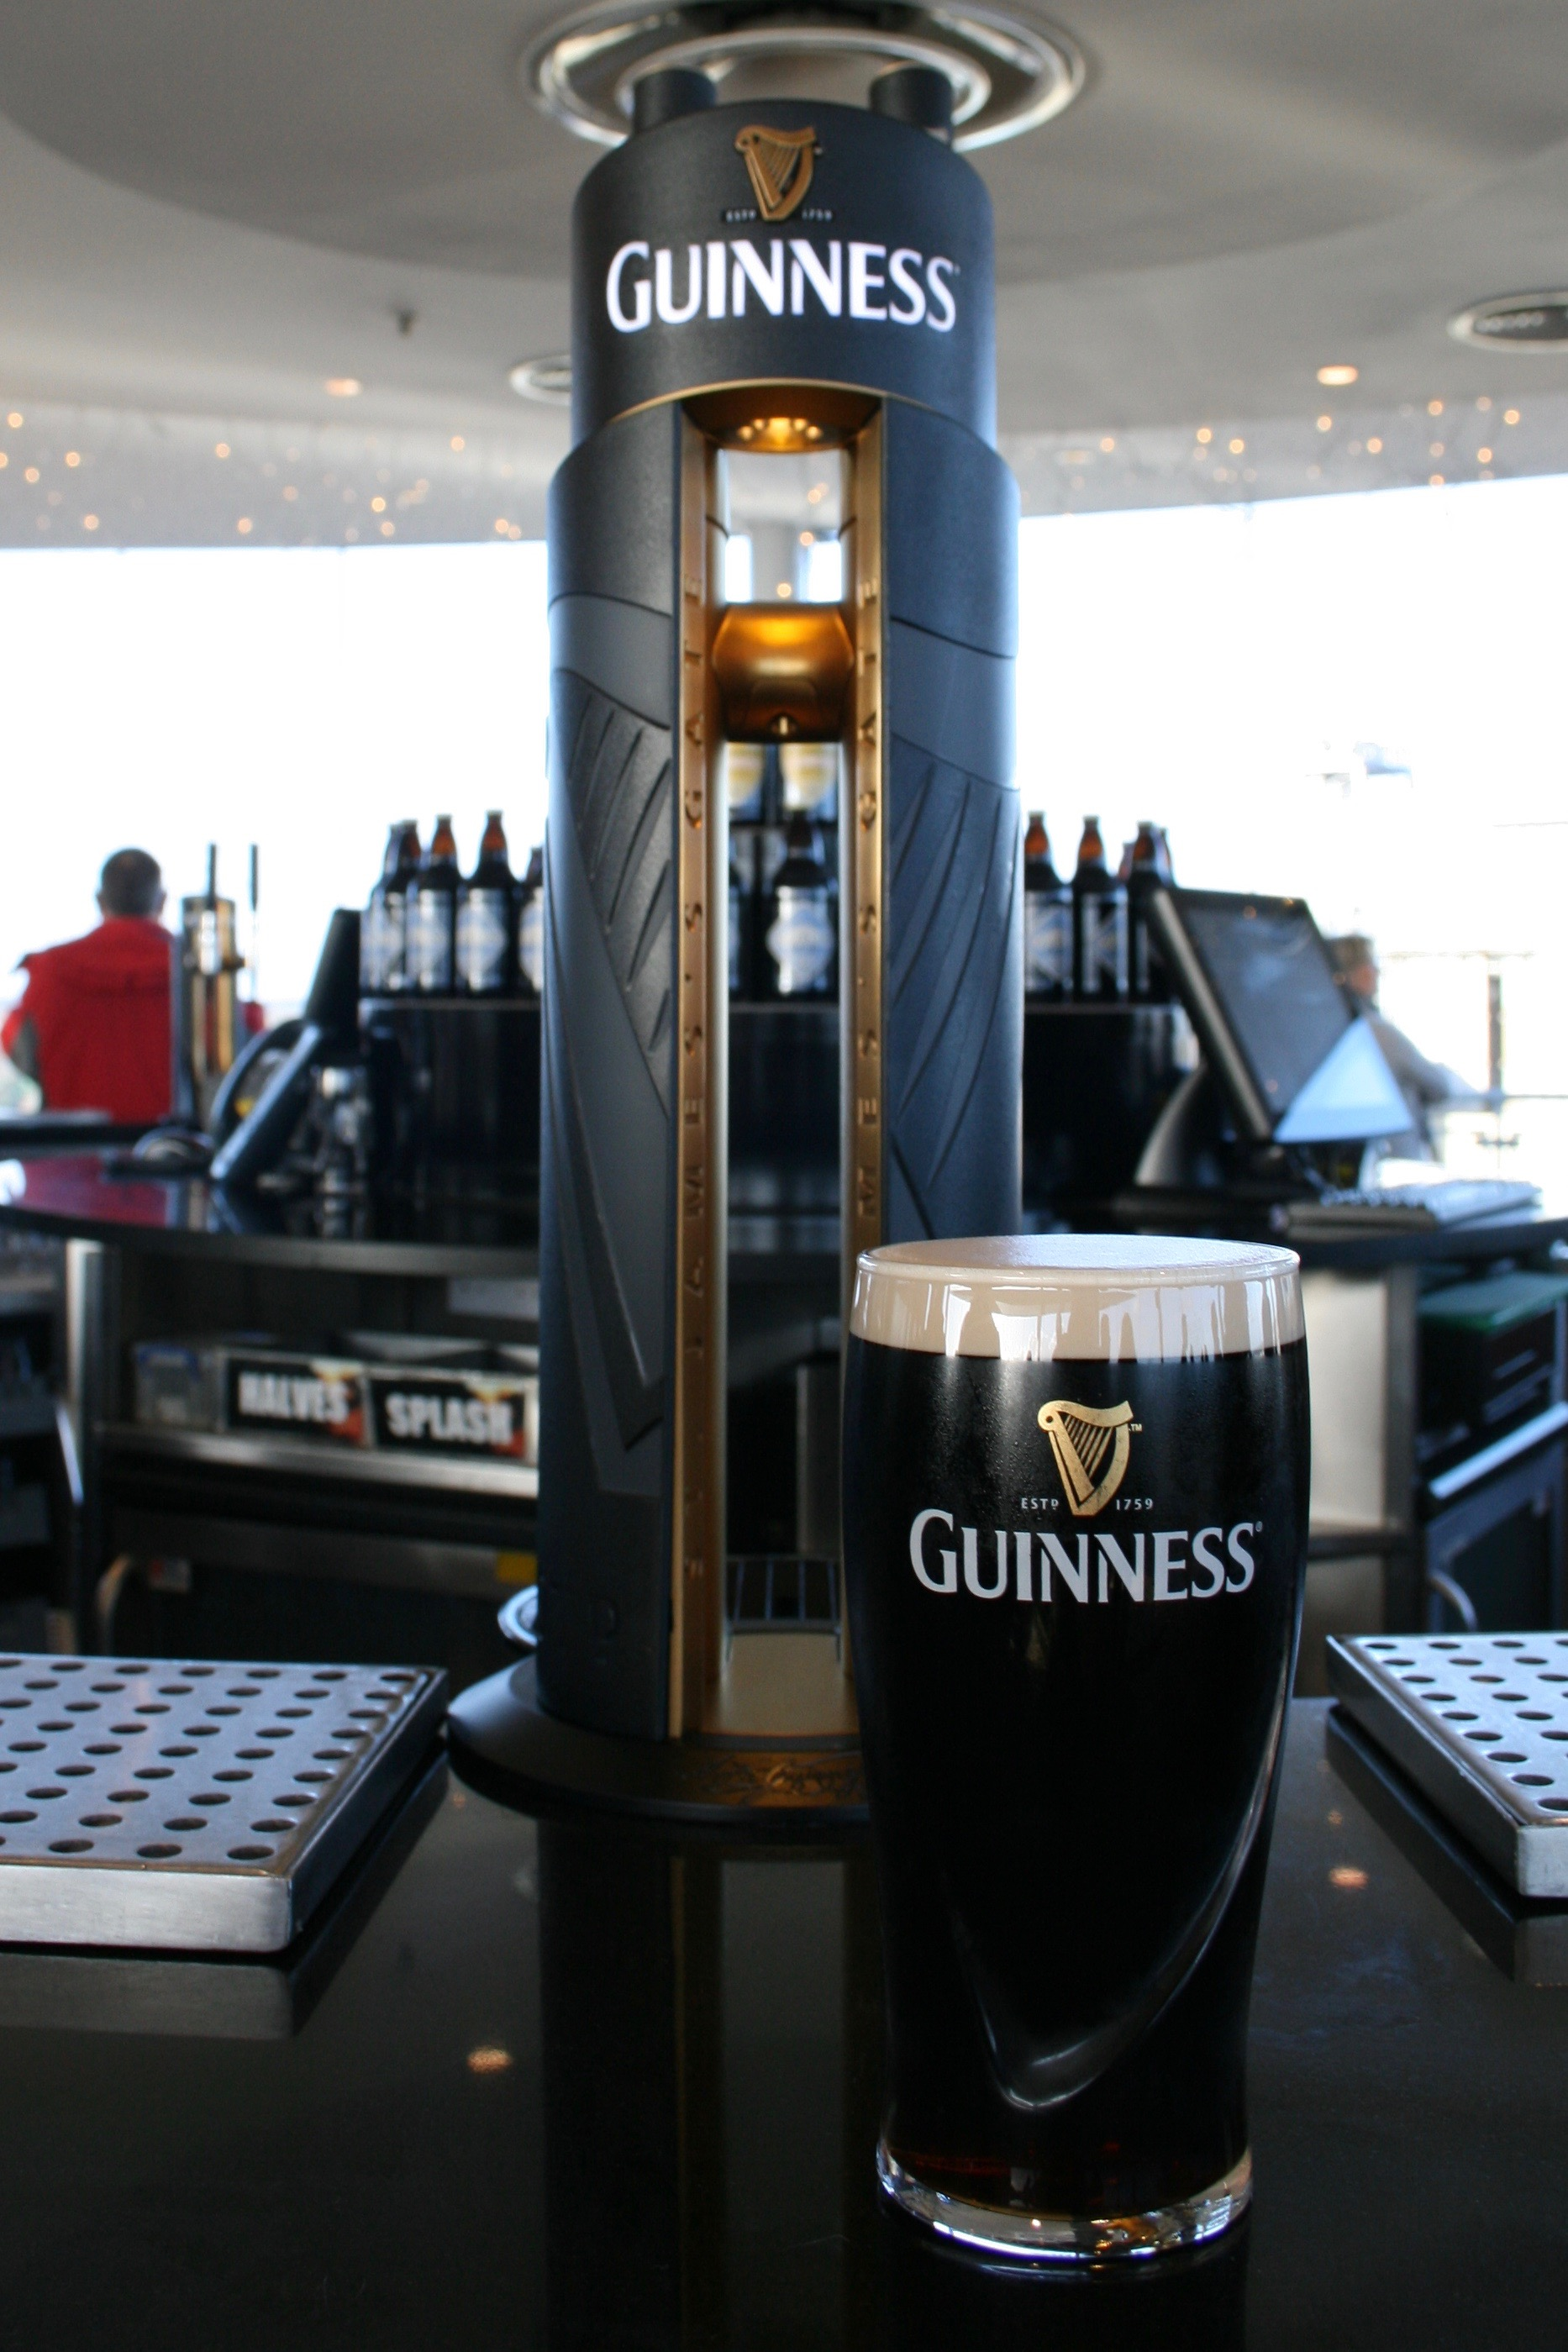 Guinness A Look At The Famous Irish Brewery